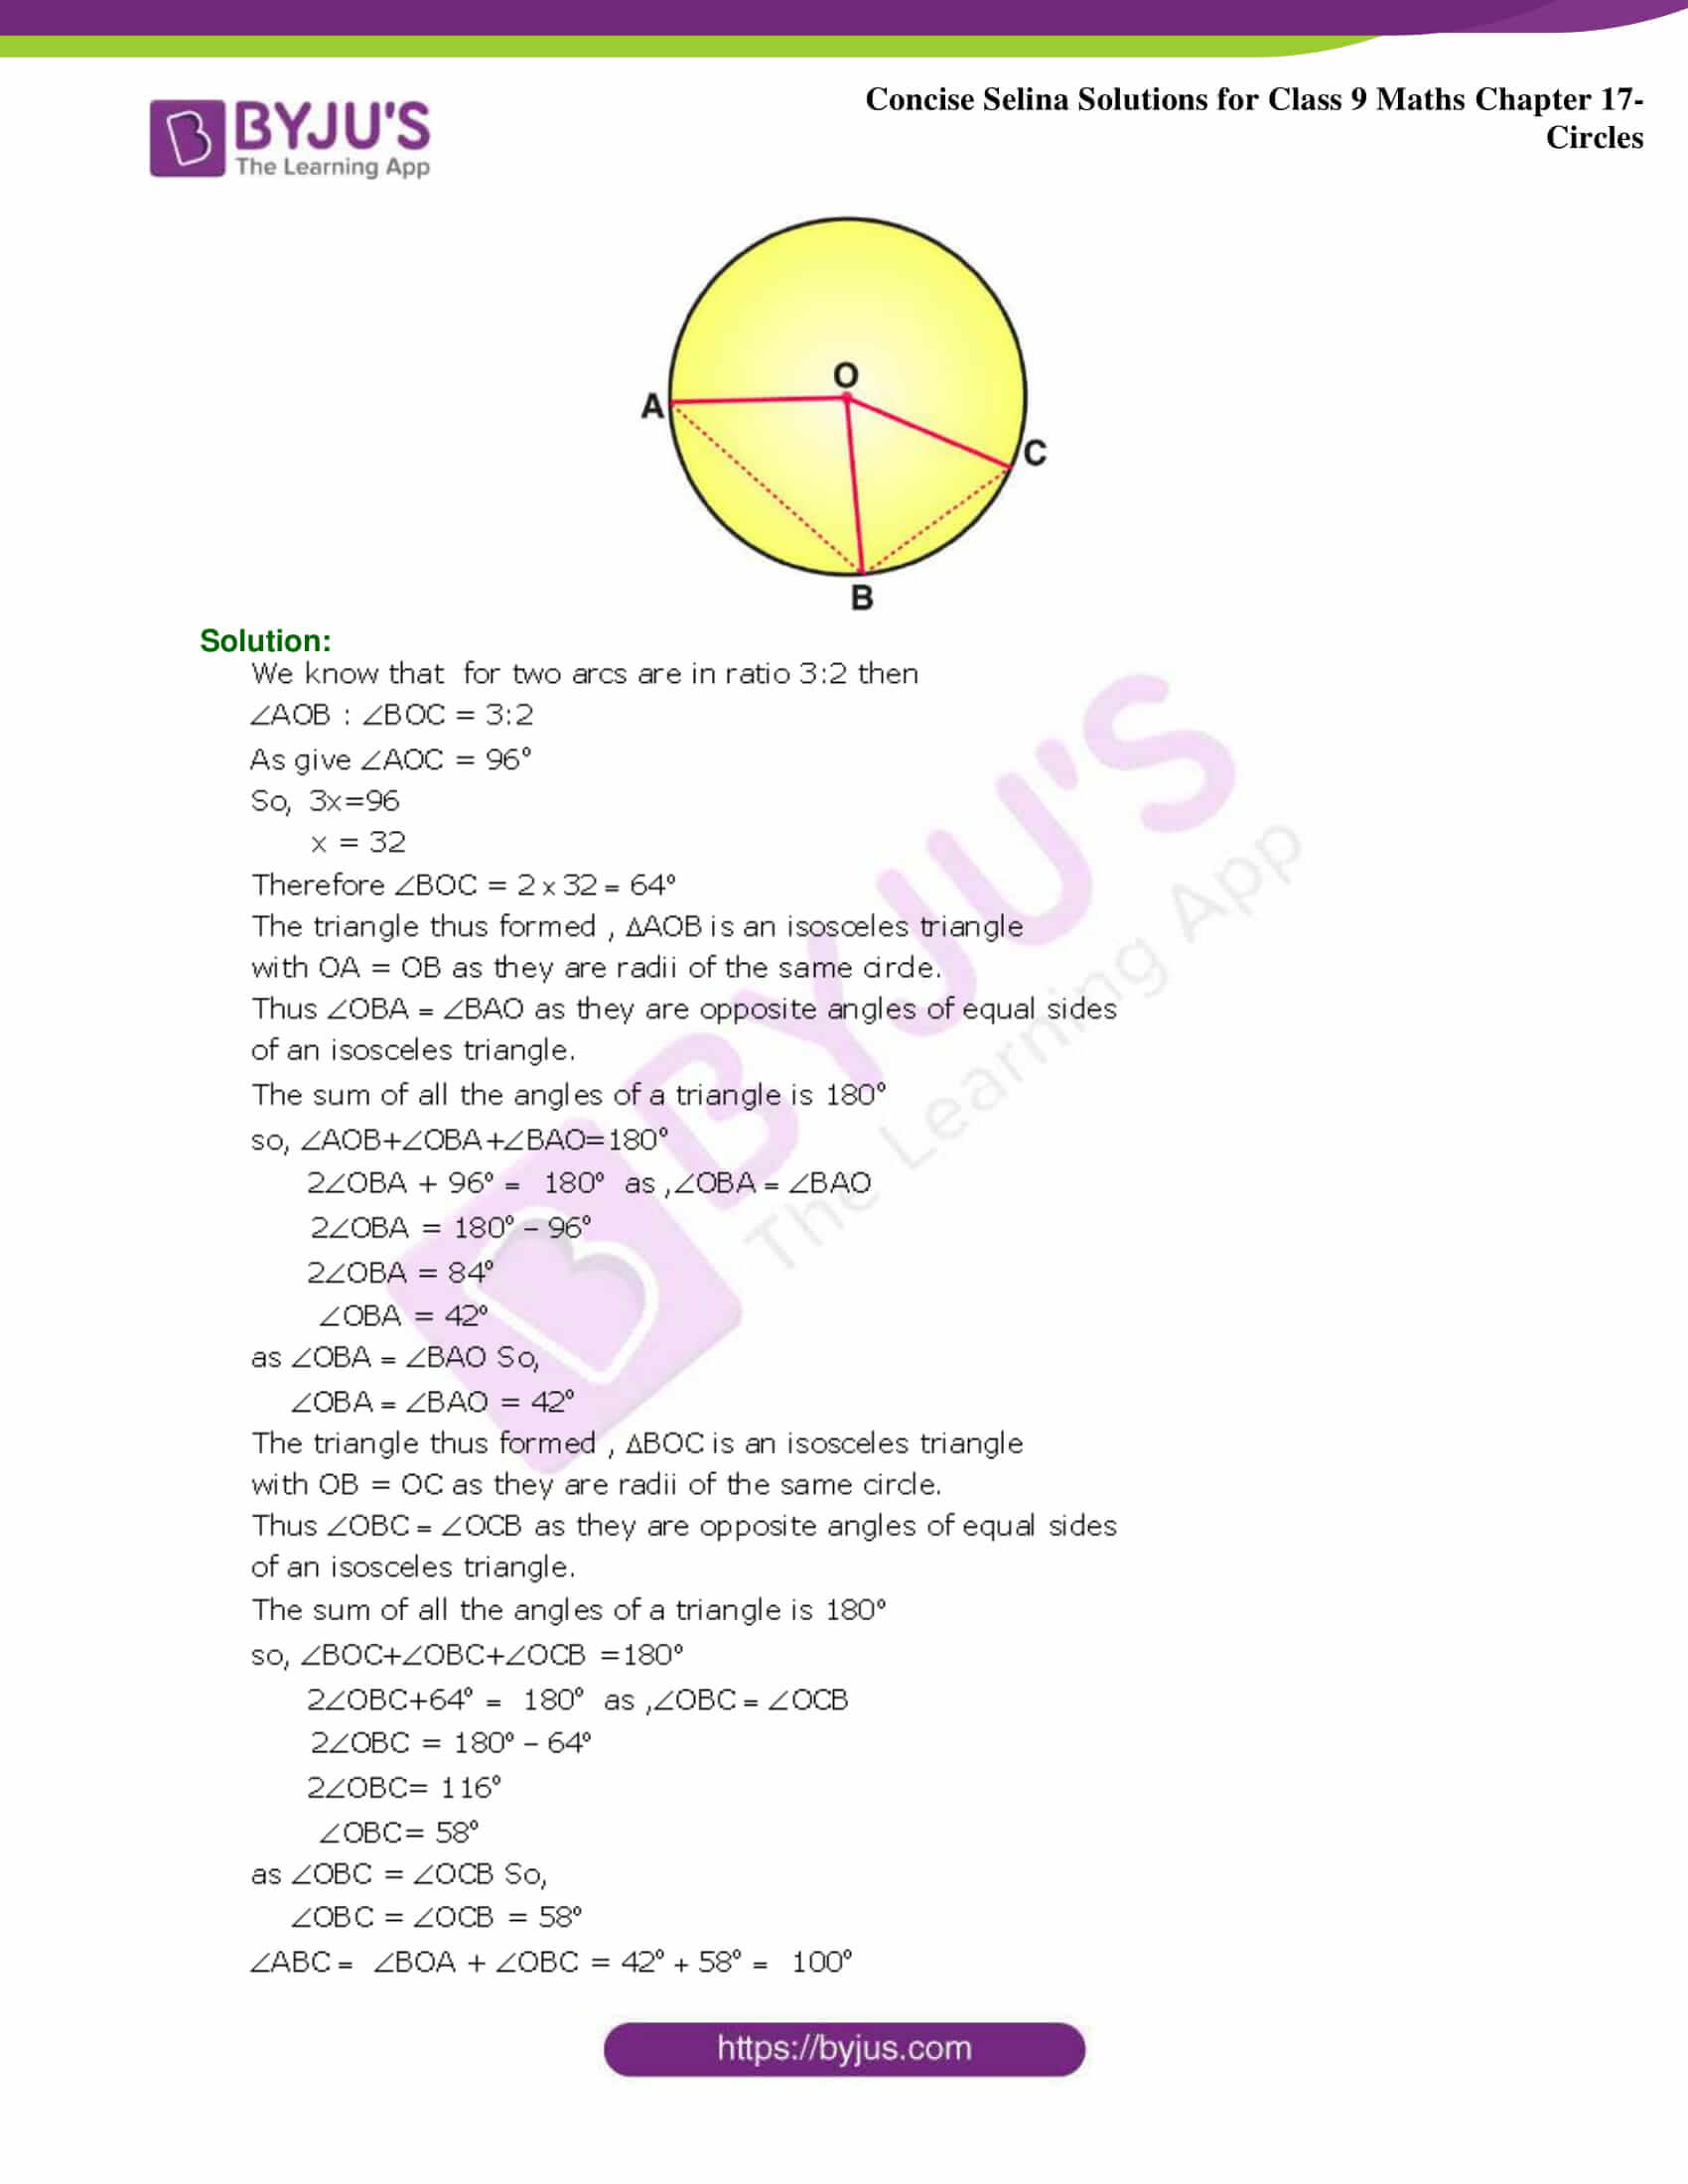 Concise Selina Solutions Class 9 Maths Chapter 17 Circles part 24